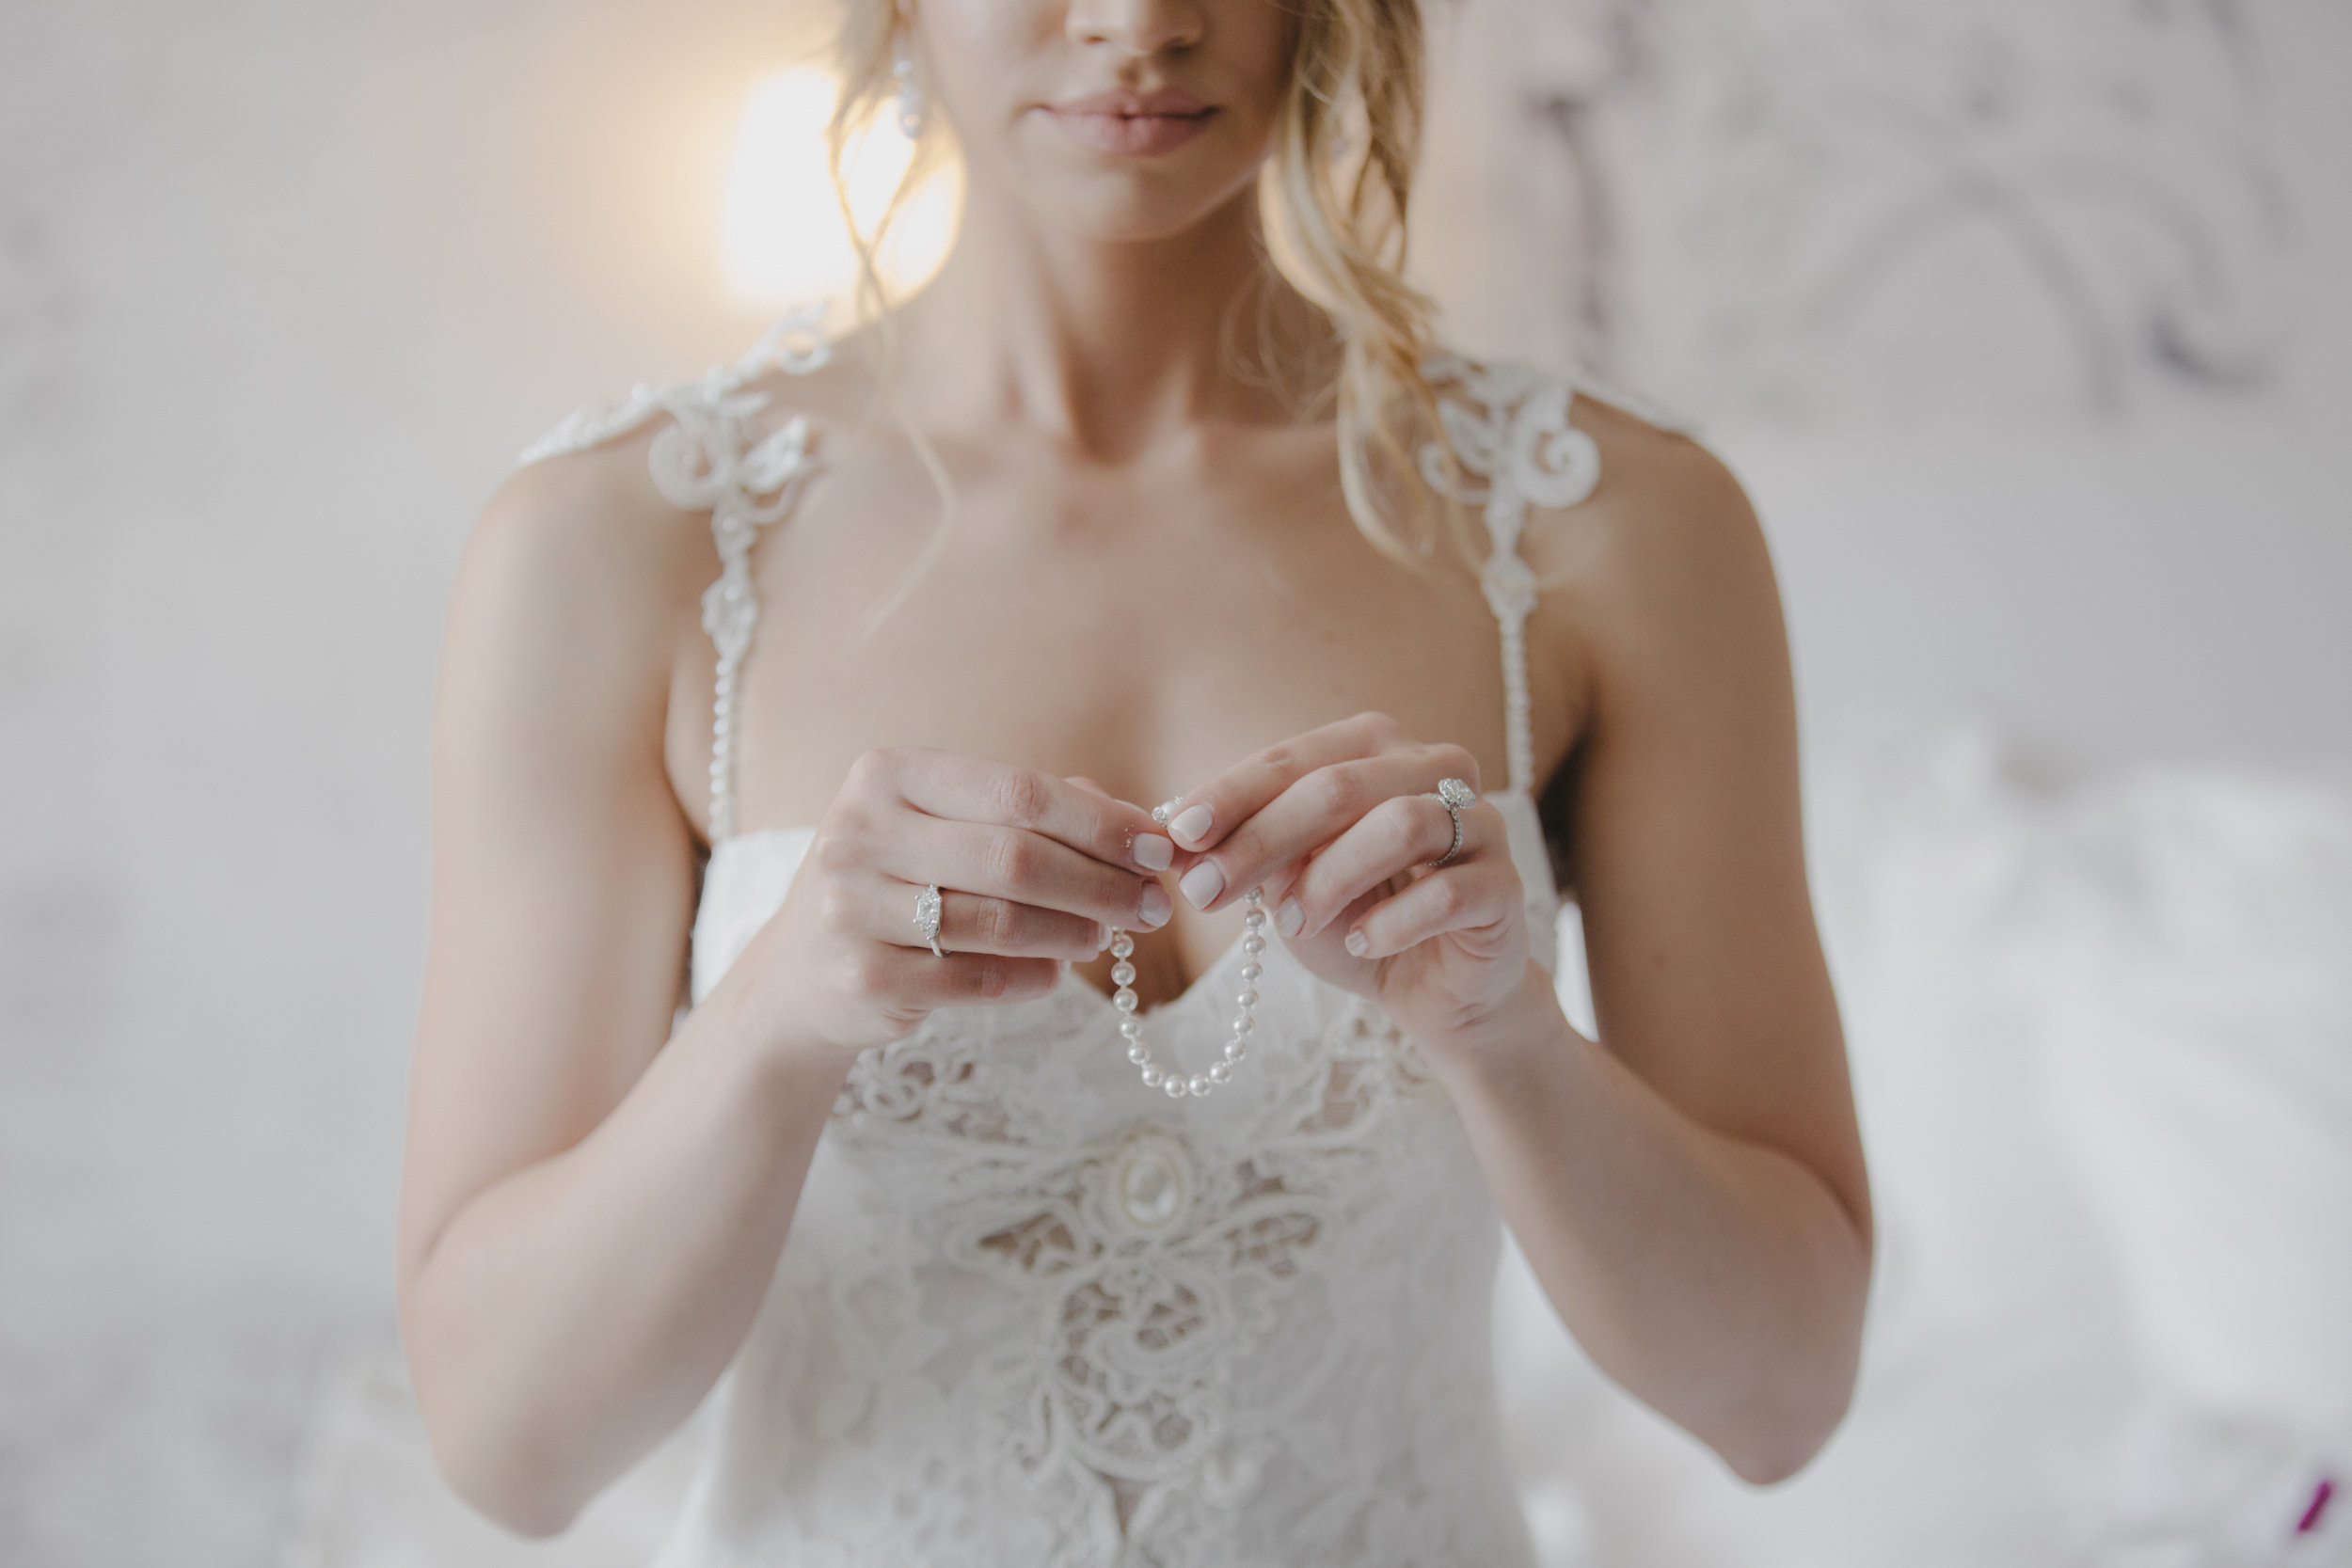 Pearl Wedding Jewelry ||  Luxury Destination Wedding Planning and Event Design by  Andrea Eppolito Events  · Photos by  Stephen Salazar  · Bride getting dressed.